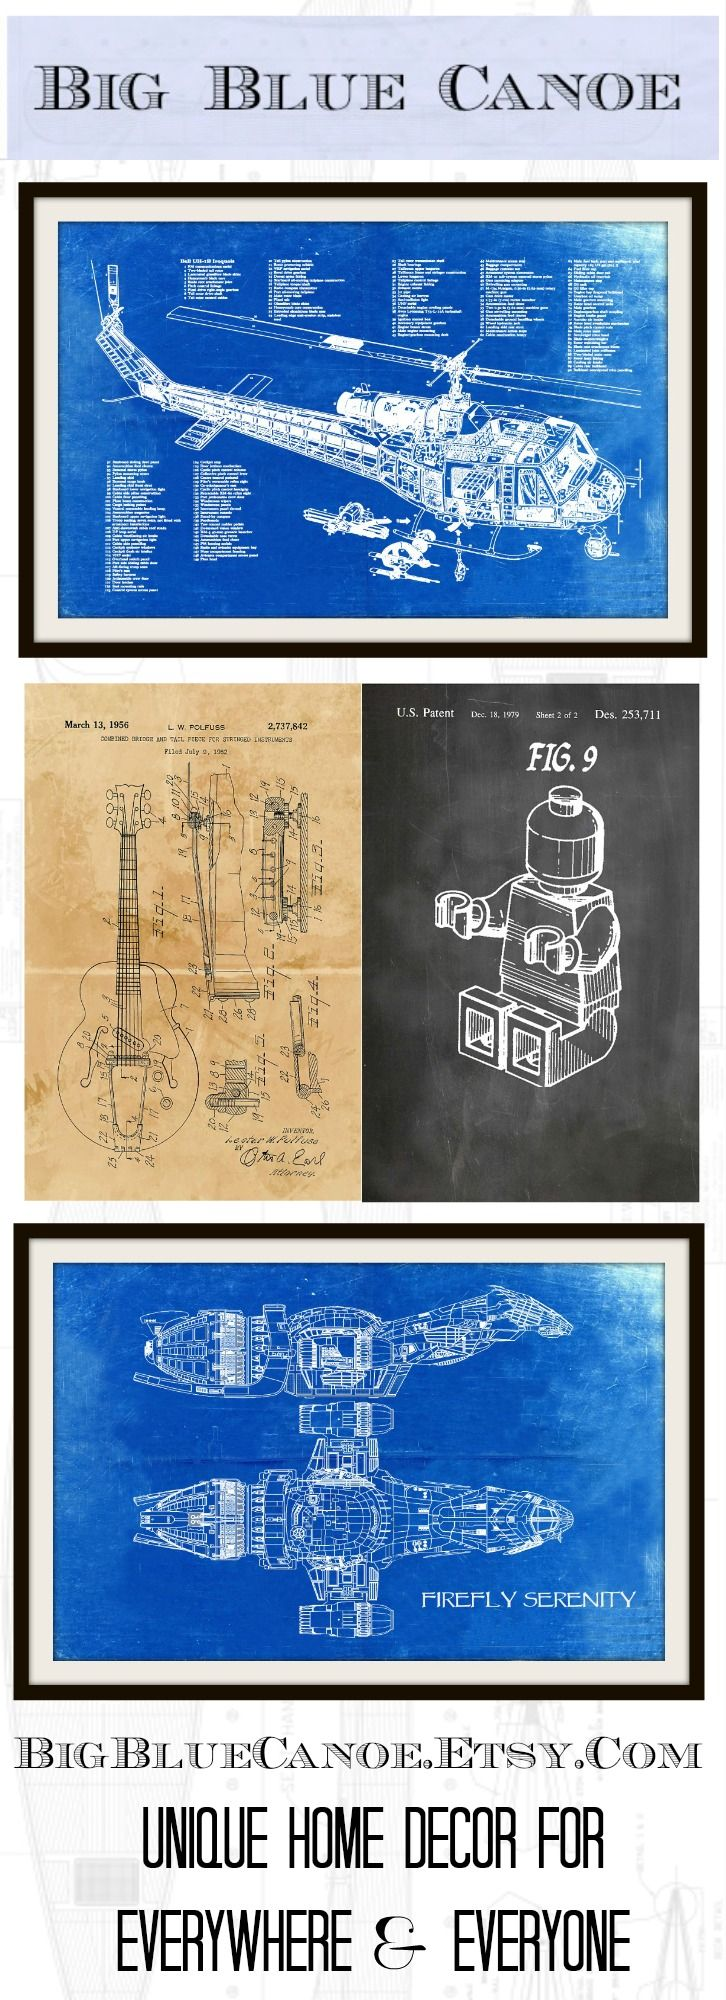 Big blue canoe supplying blueprints technical prints and patents blueprint art patent posters vintage ads and more malvernweather Gallery